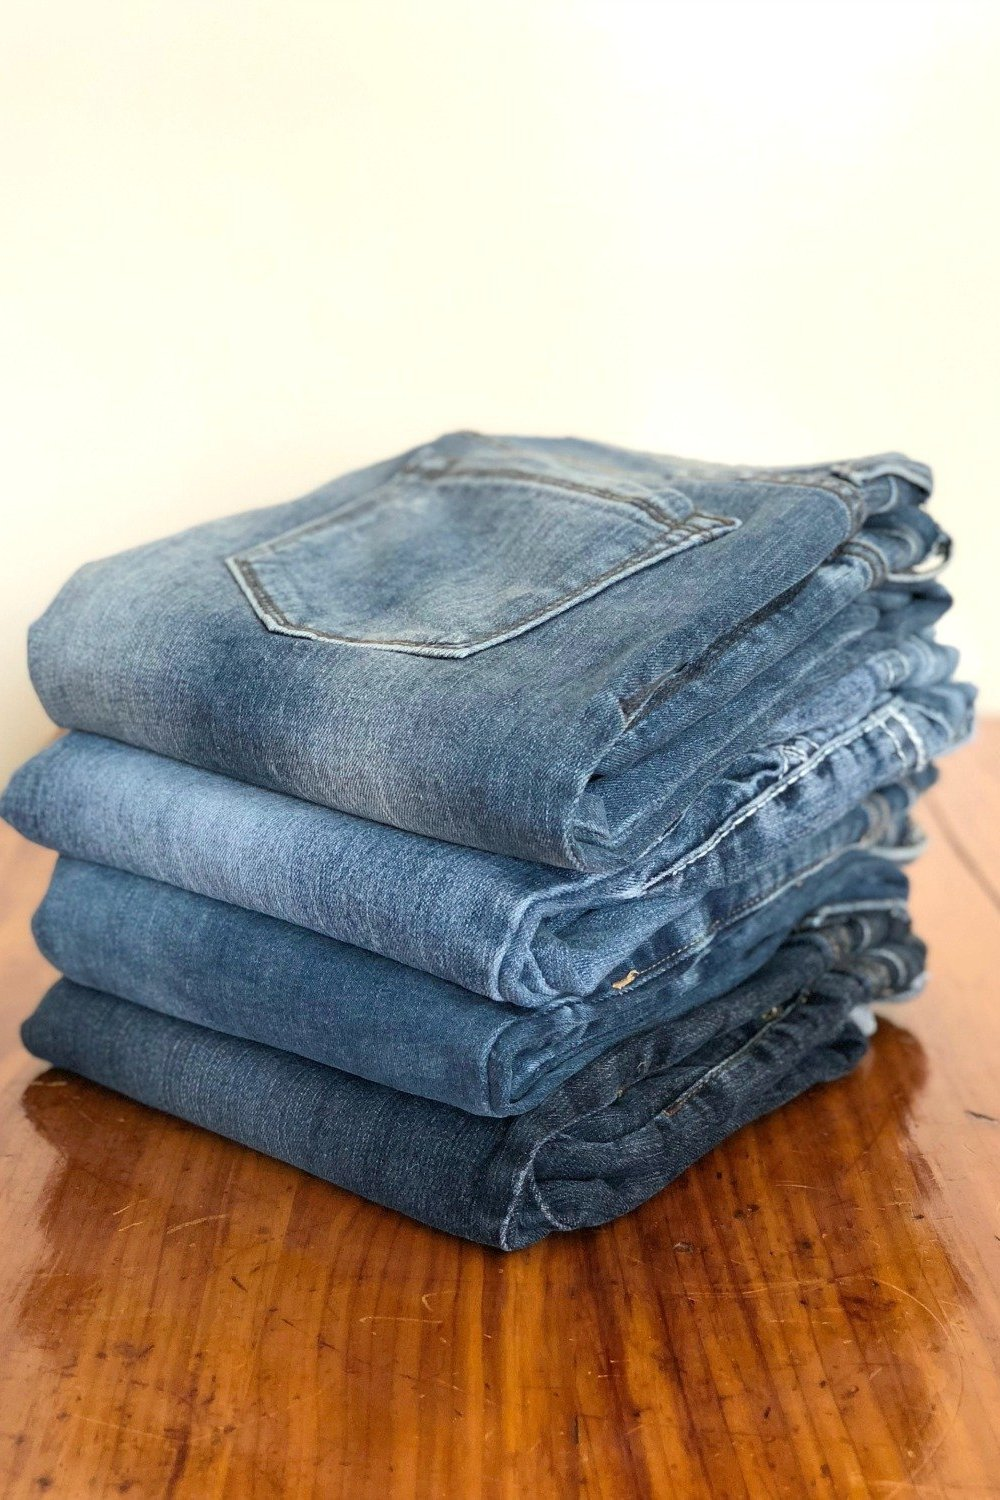 How To Fold Clothes Like A Retail Pro